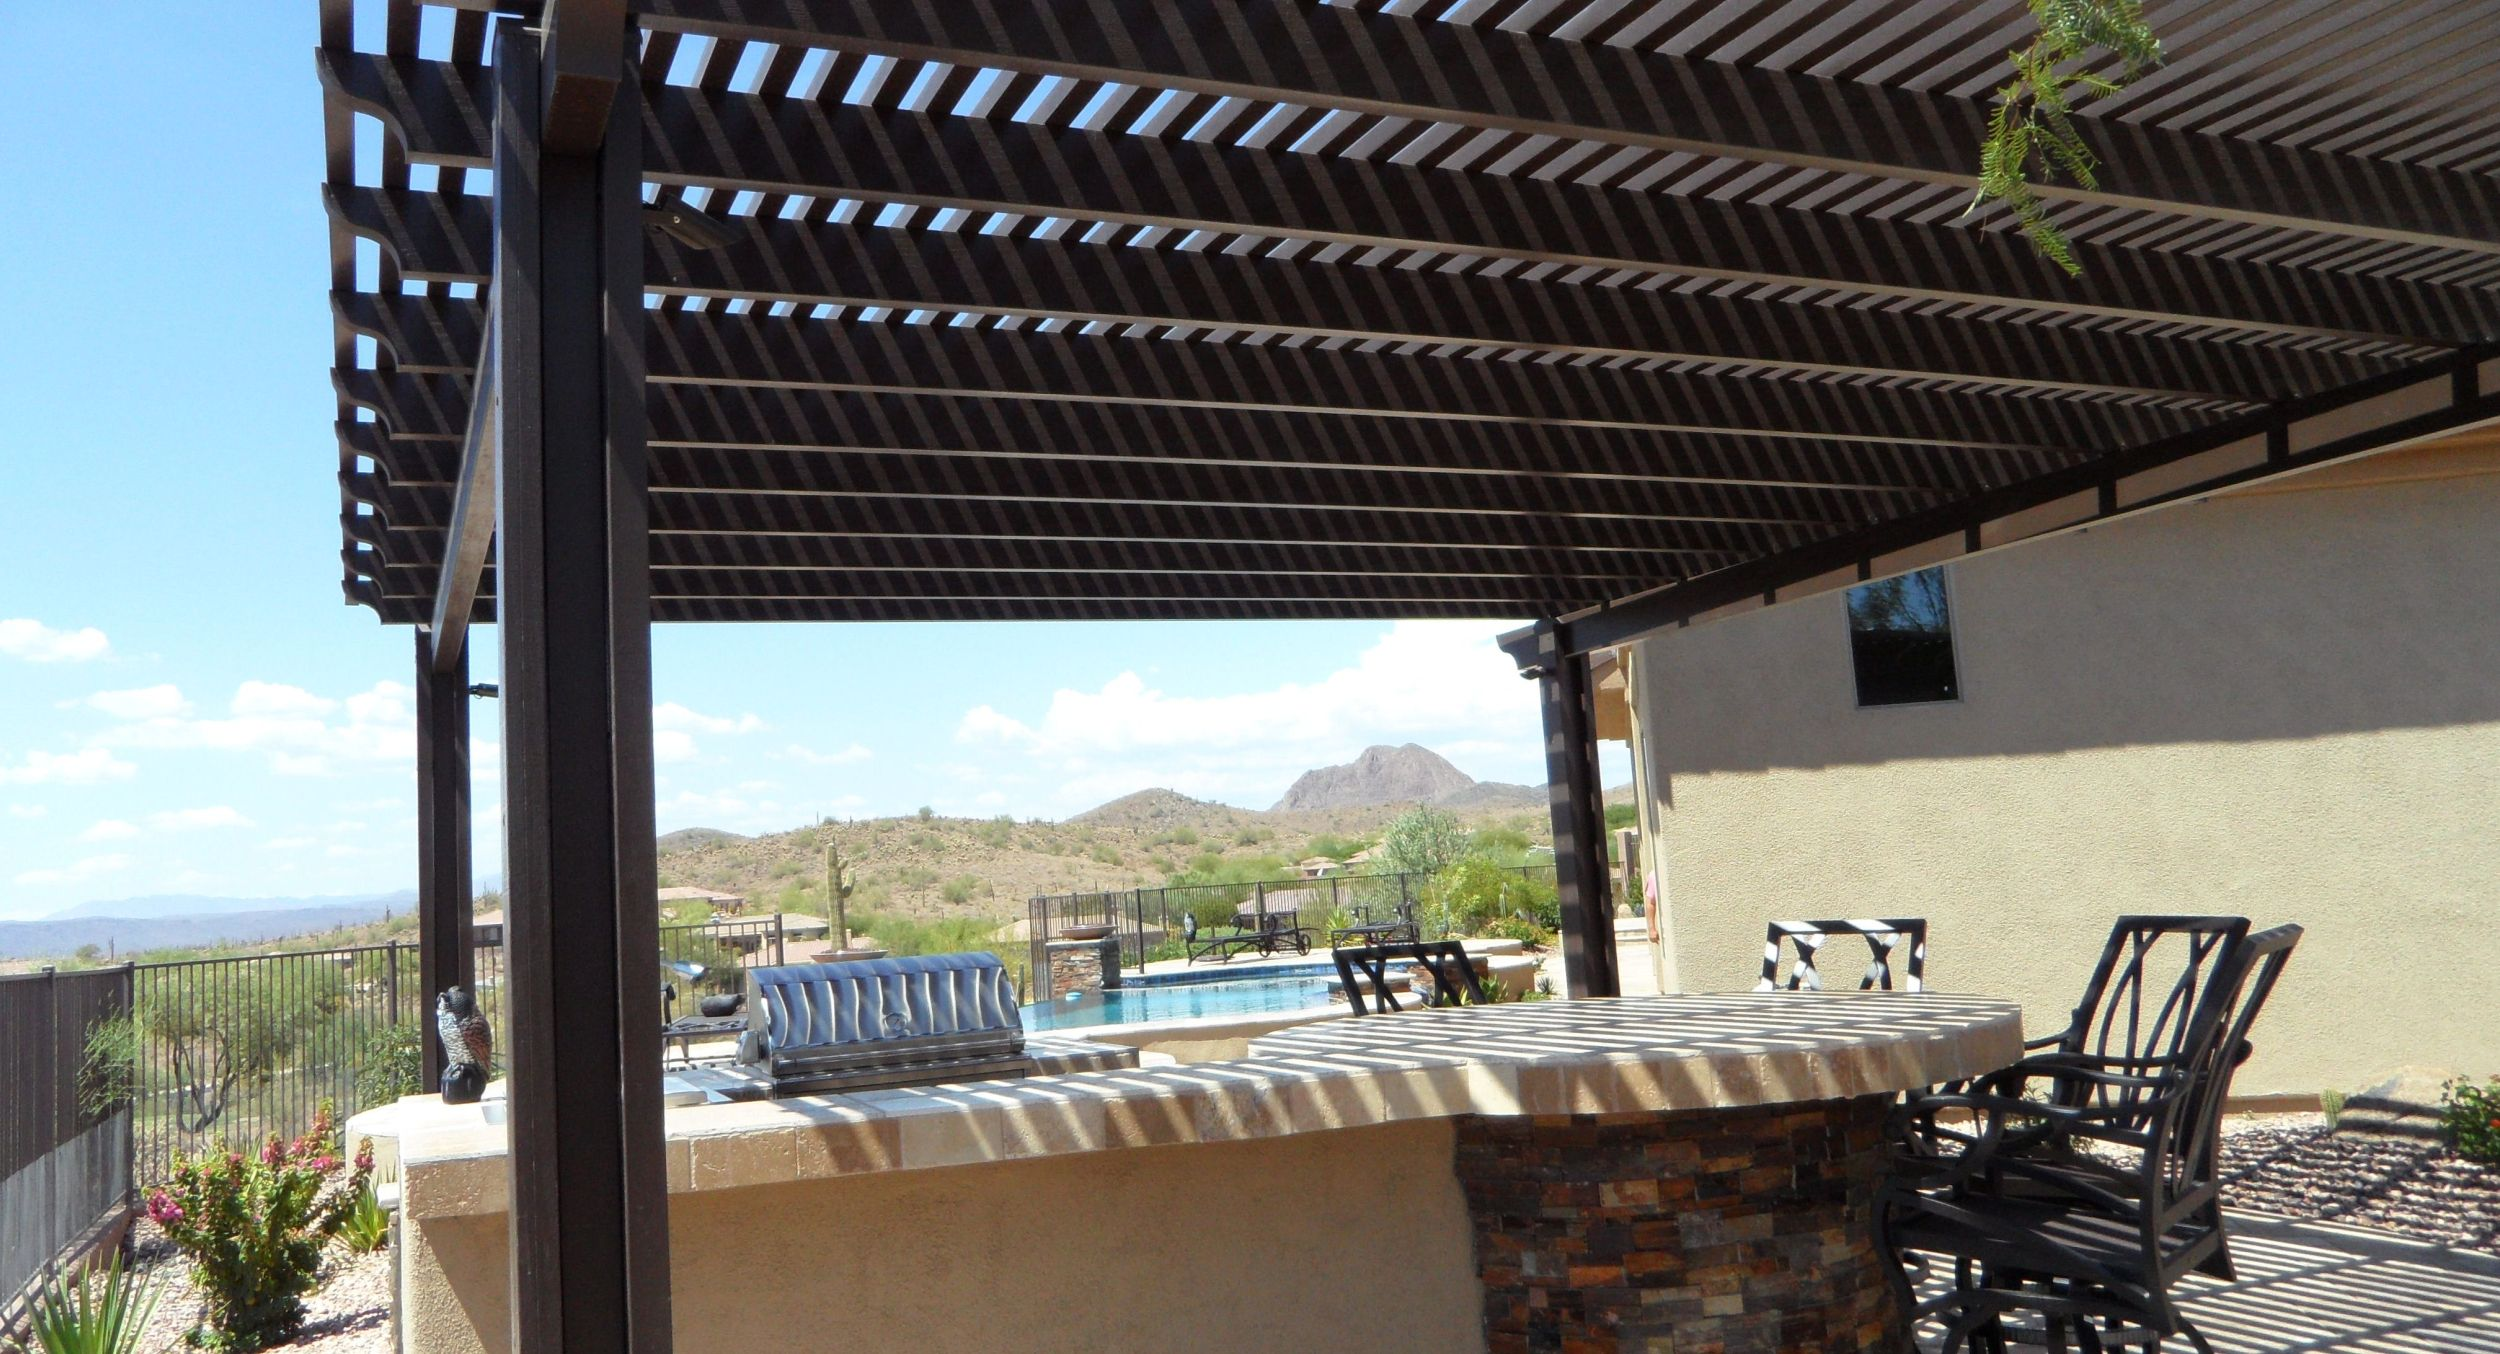 Don't sacrifice shade to keep the cost your patio down. Get the look of wood shade structures with aluminum pergolas. Phoenix and Scottsdale homeowners, you can have instant shade for less that looks great and is built to last.